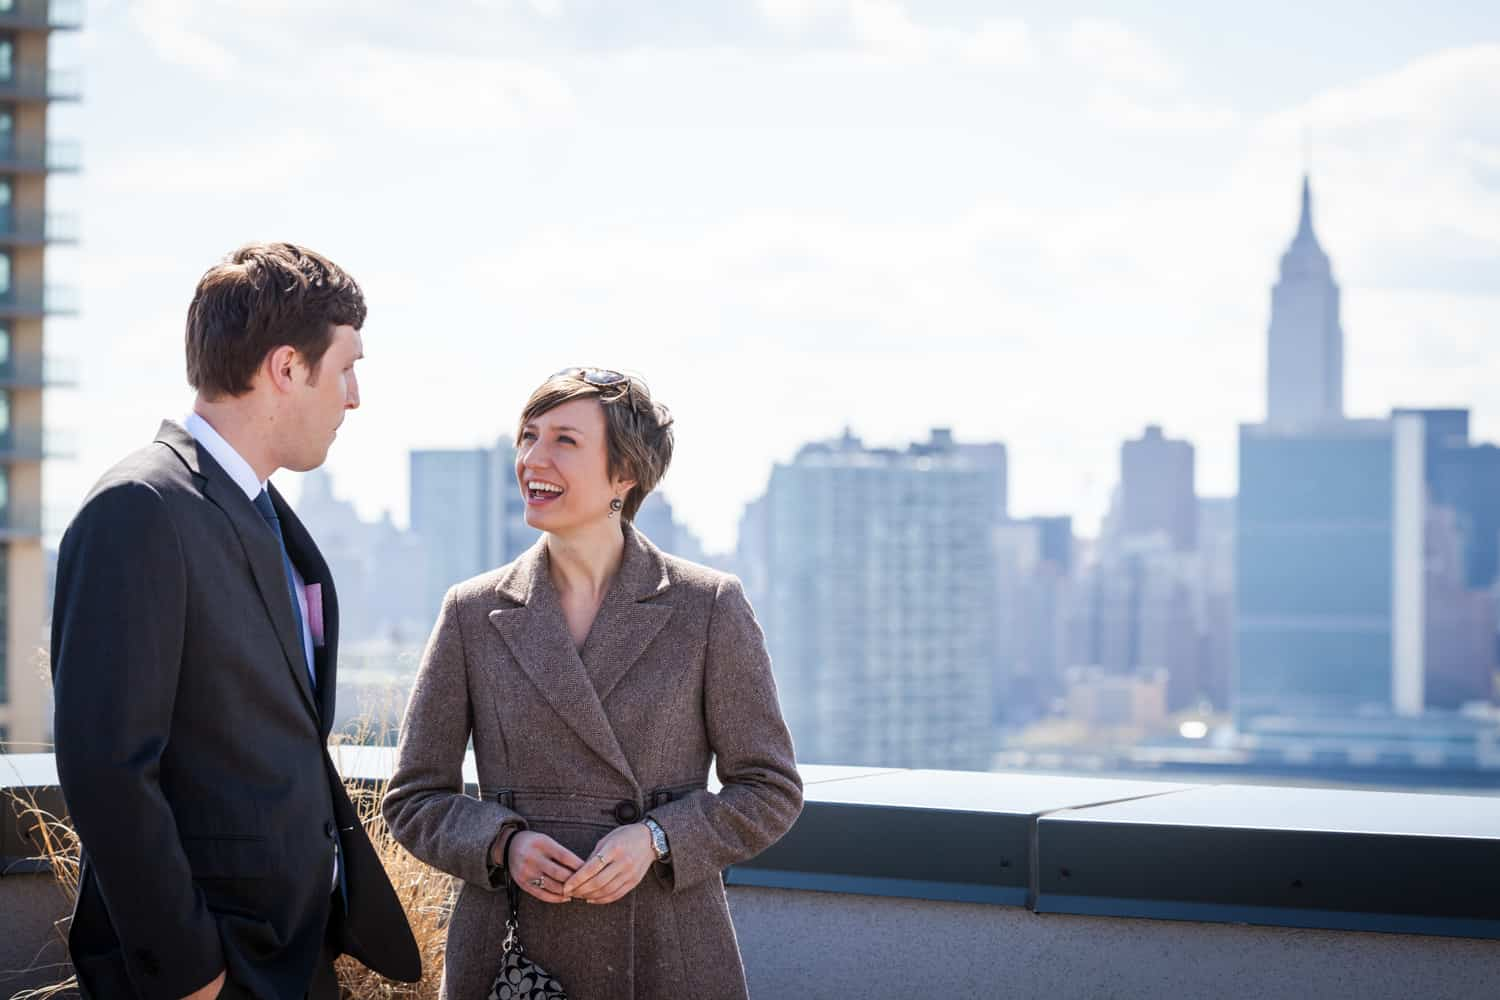 Couple talking on roof of building with Empire State Building in background